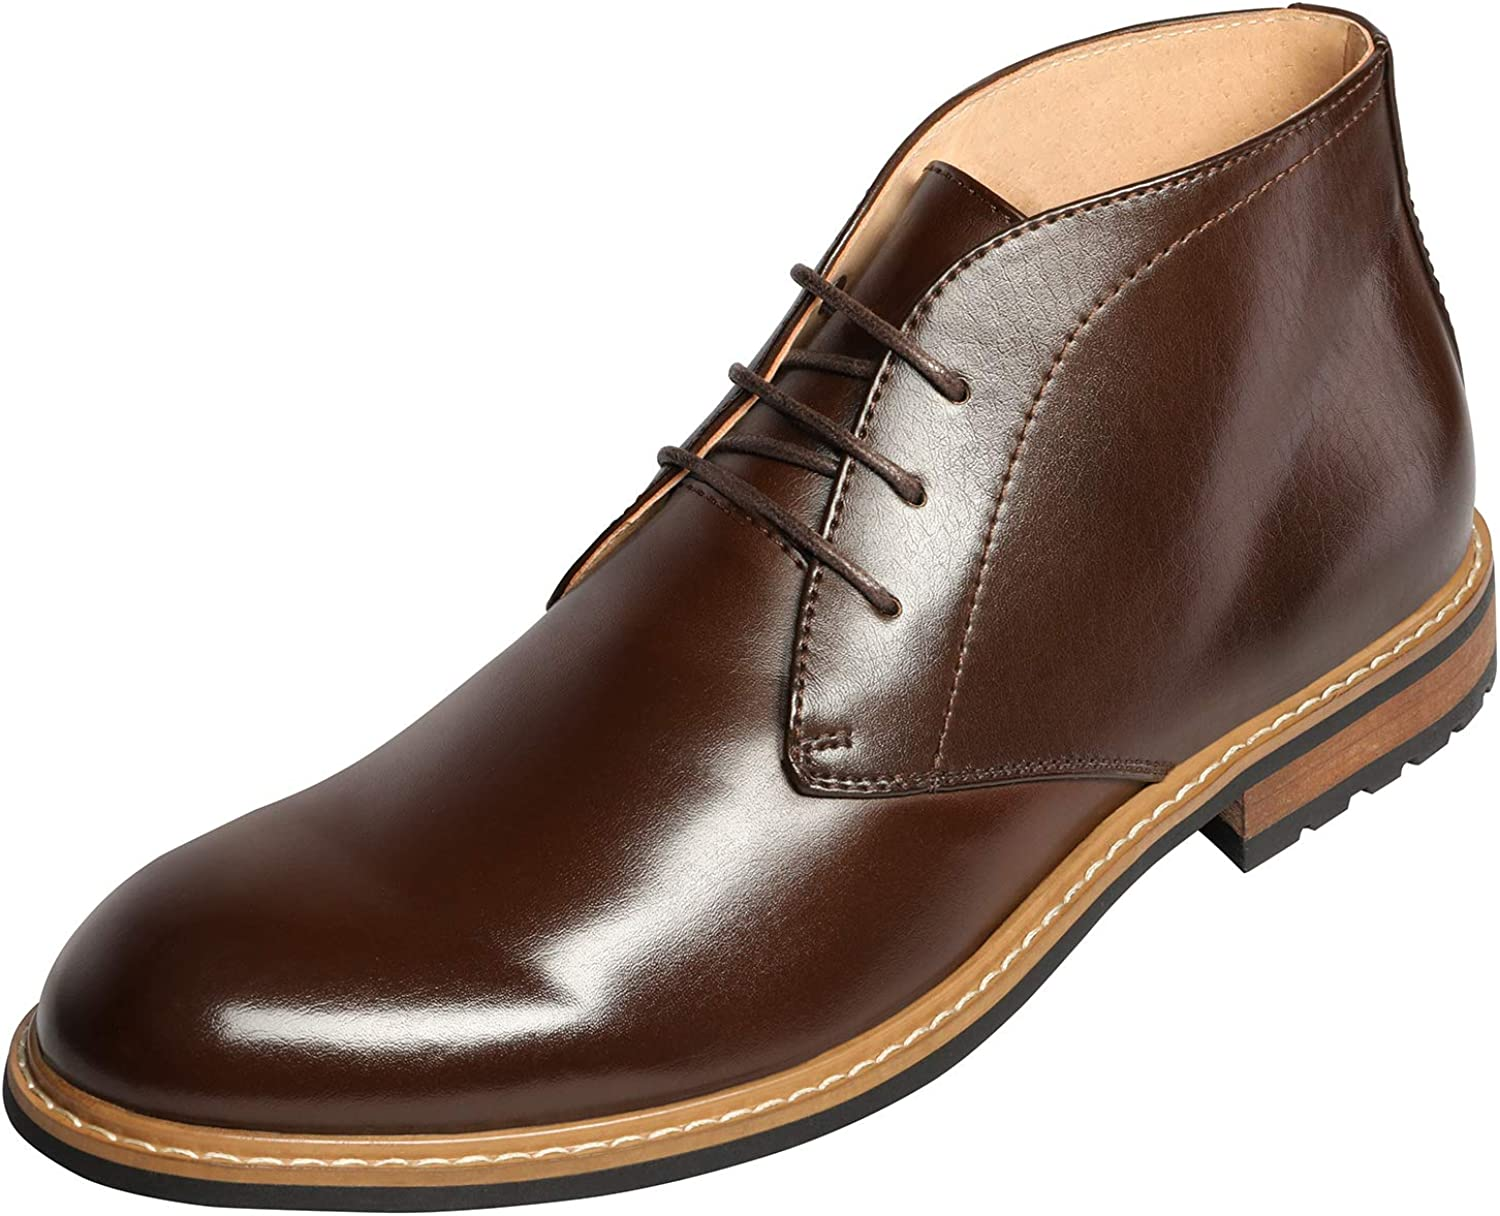 Bruno Free shipping New Marc Men's Chukka low-pricing Dress Business Casual Boot Ankle Boots